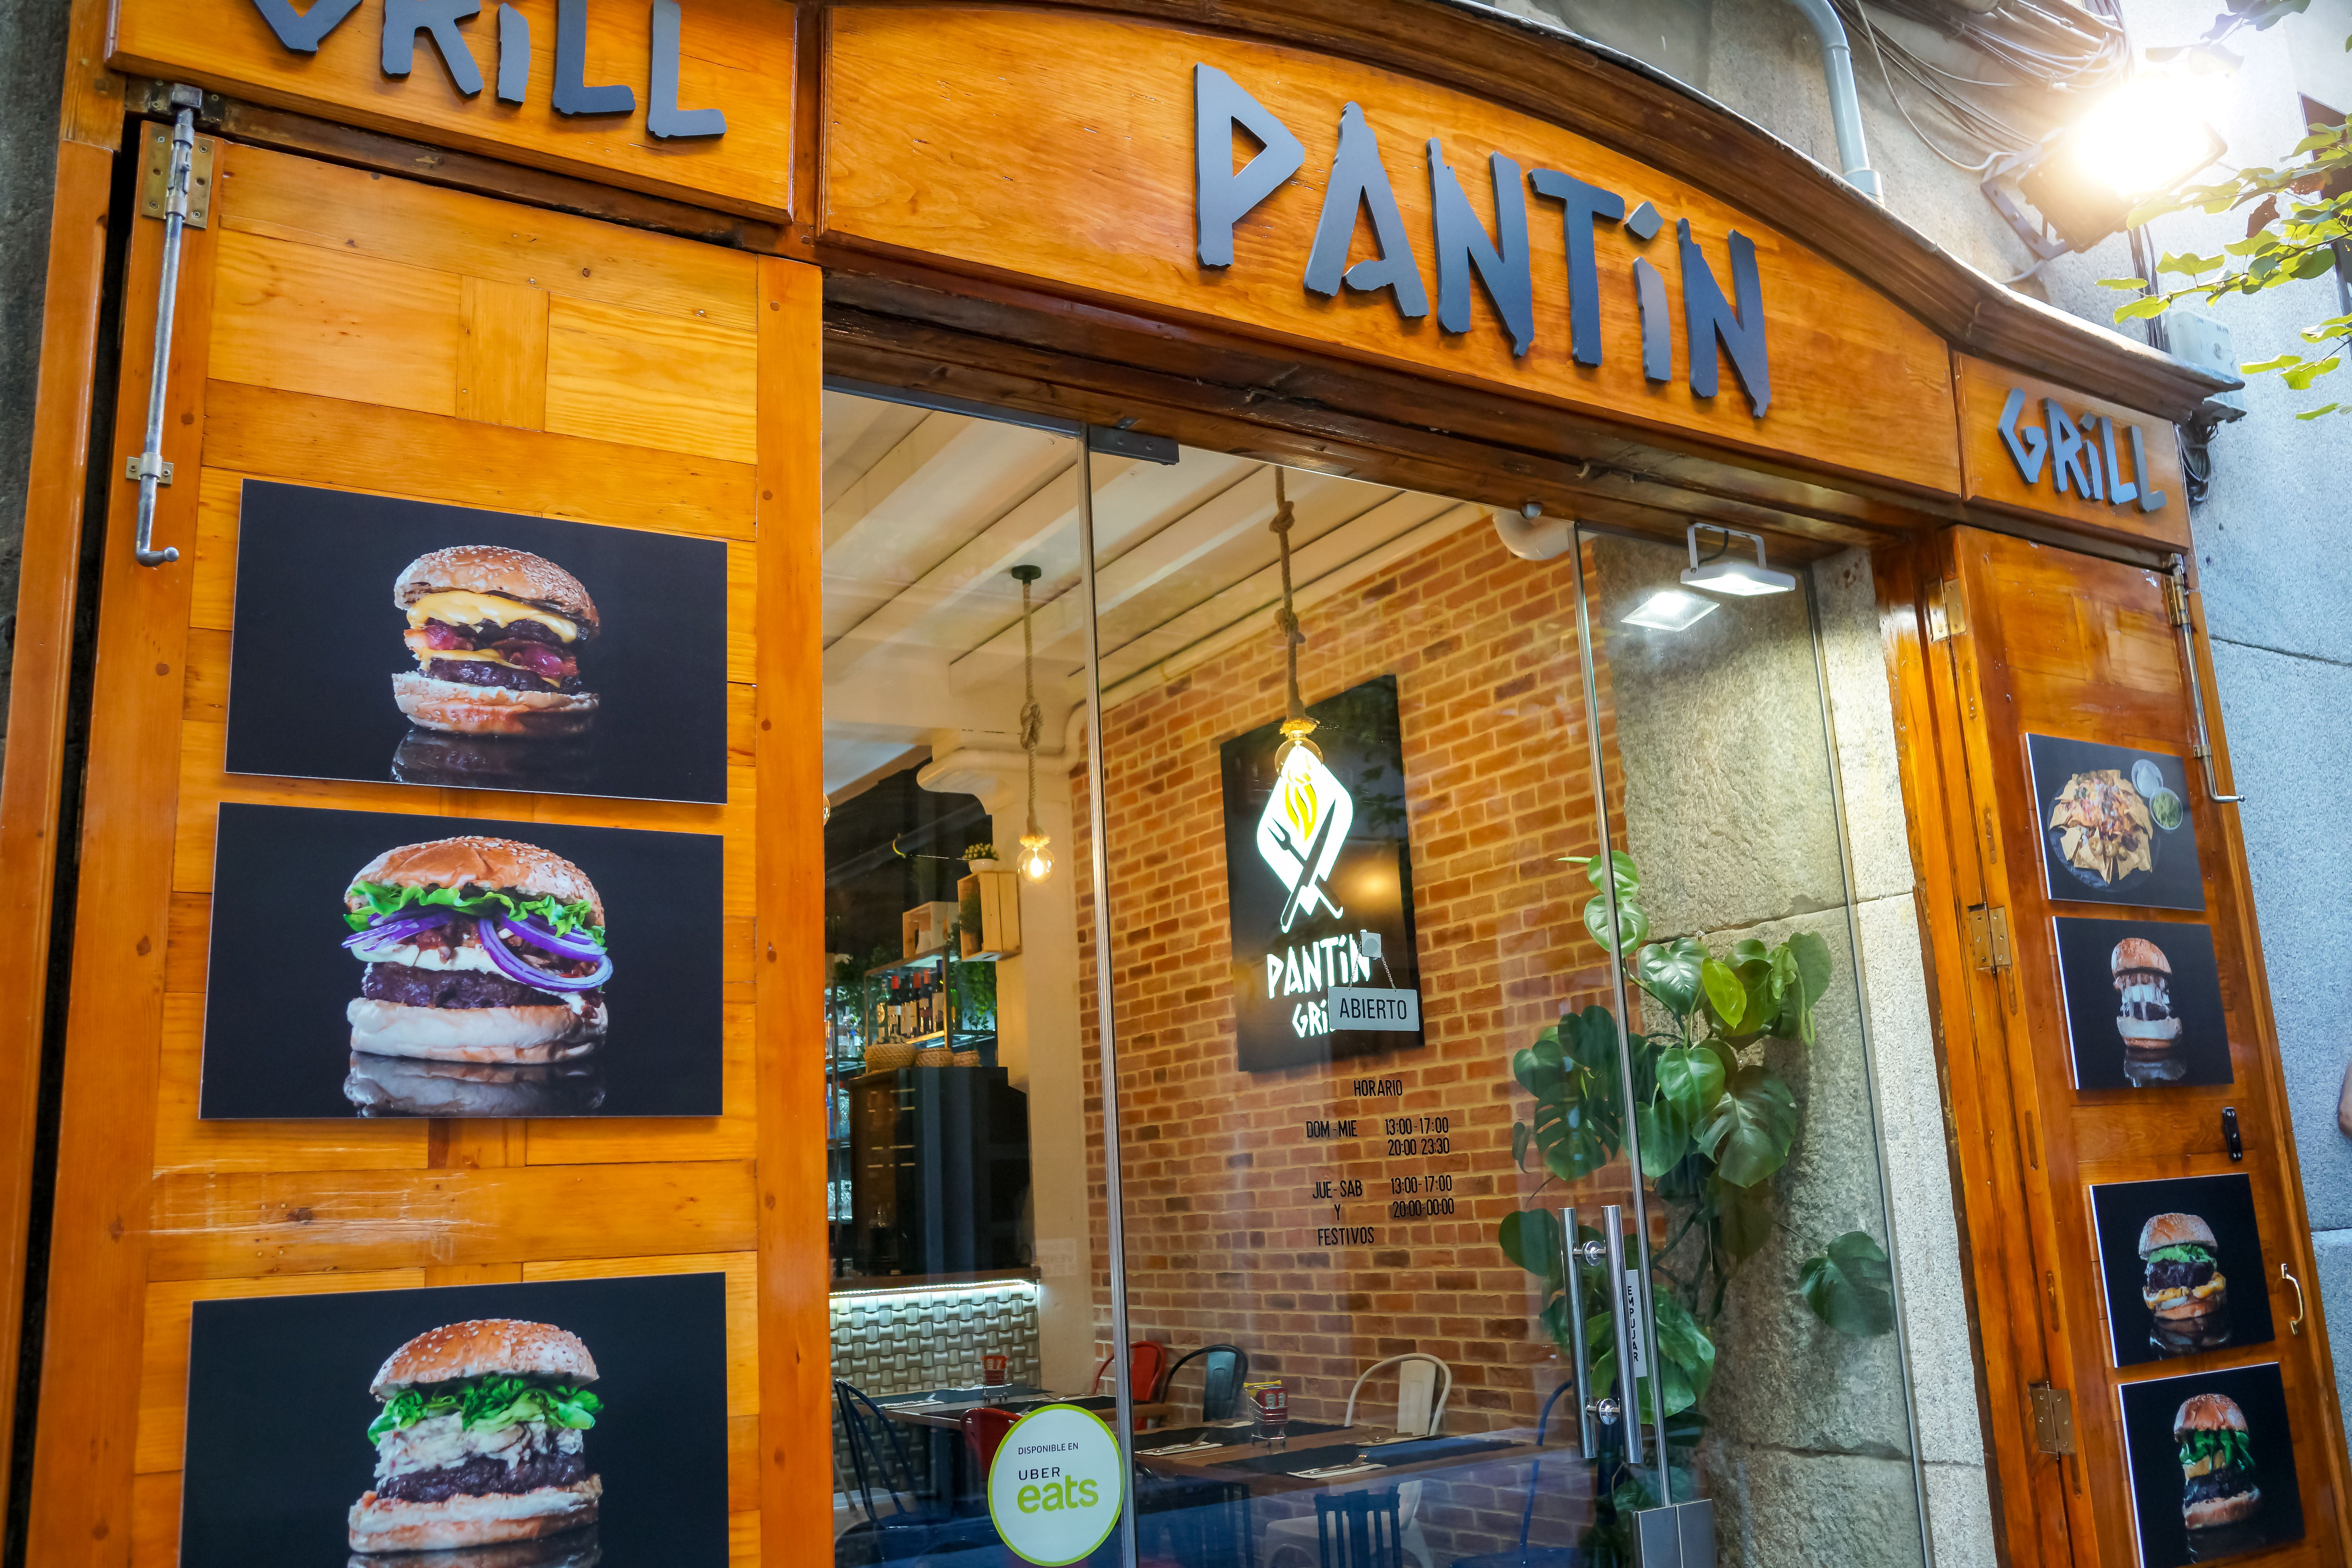 Front view of the PANTIN GRILL restaurant